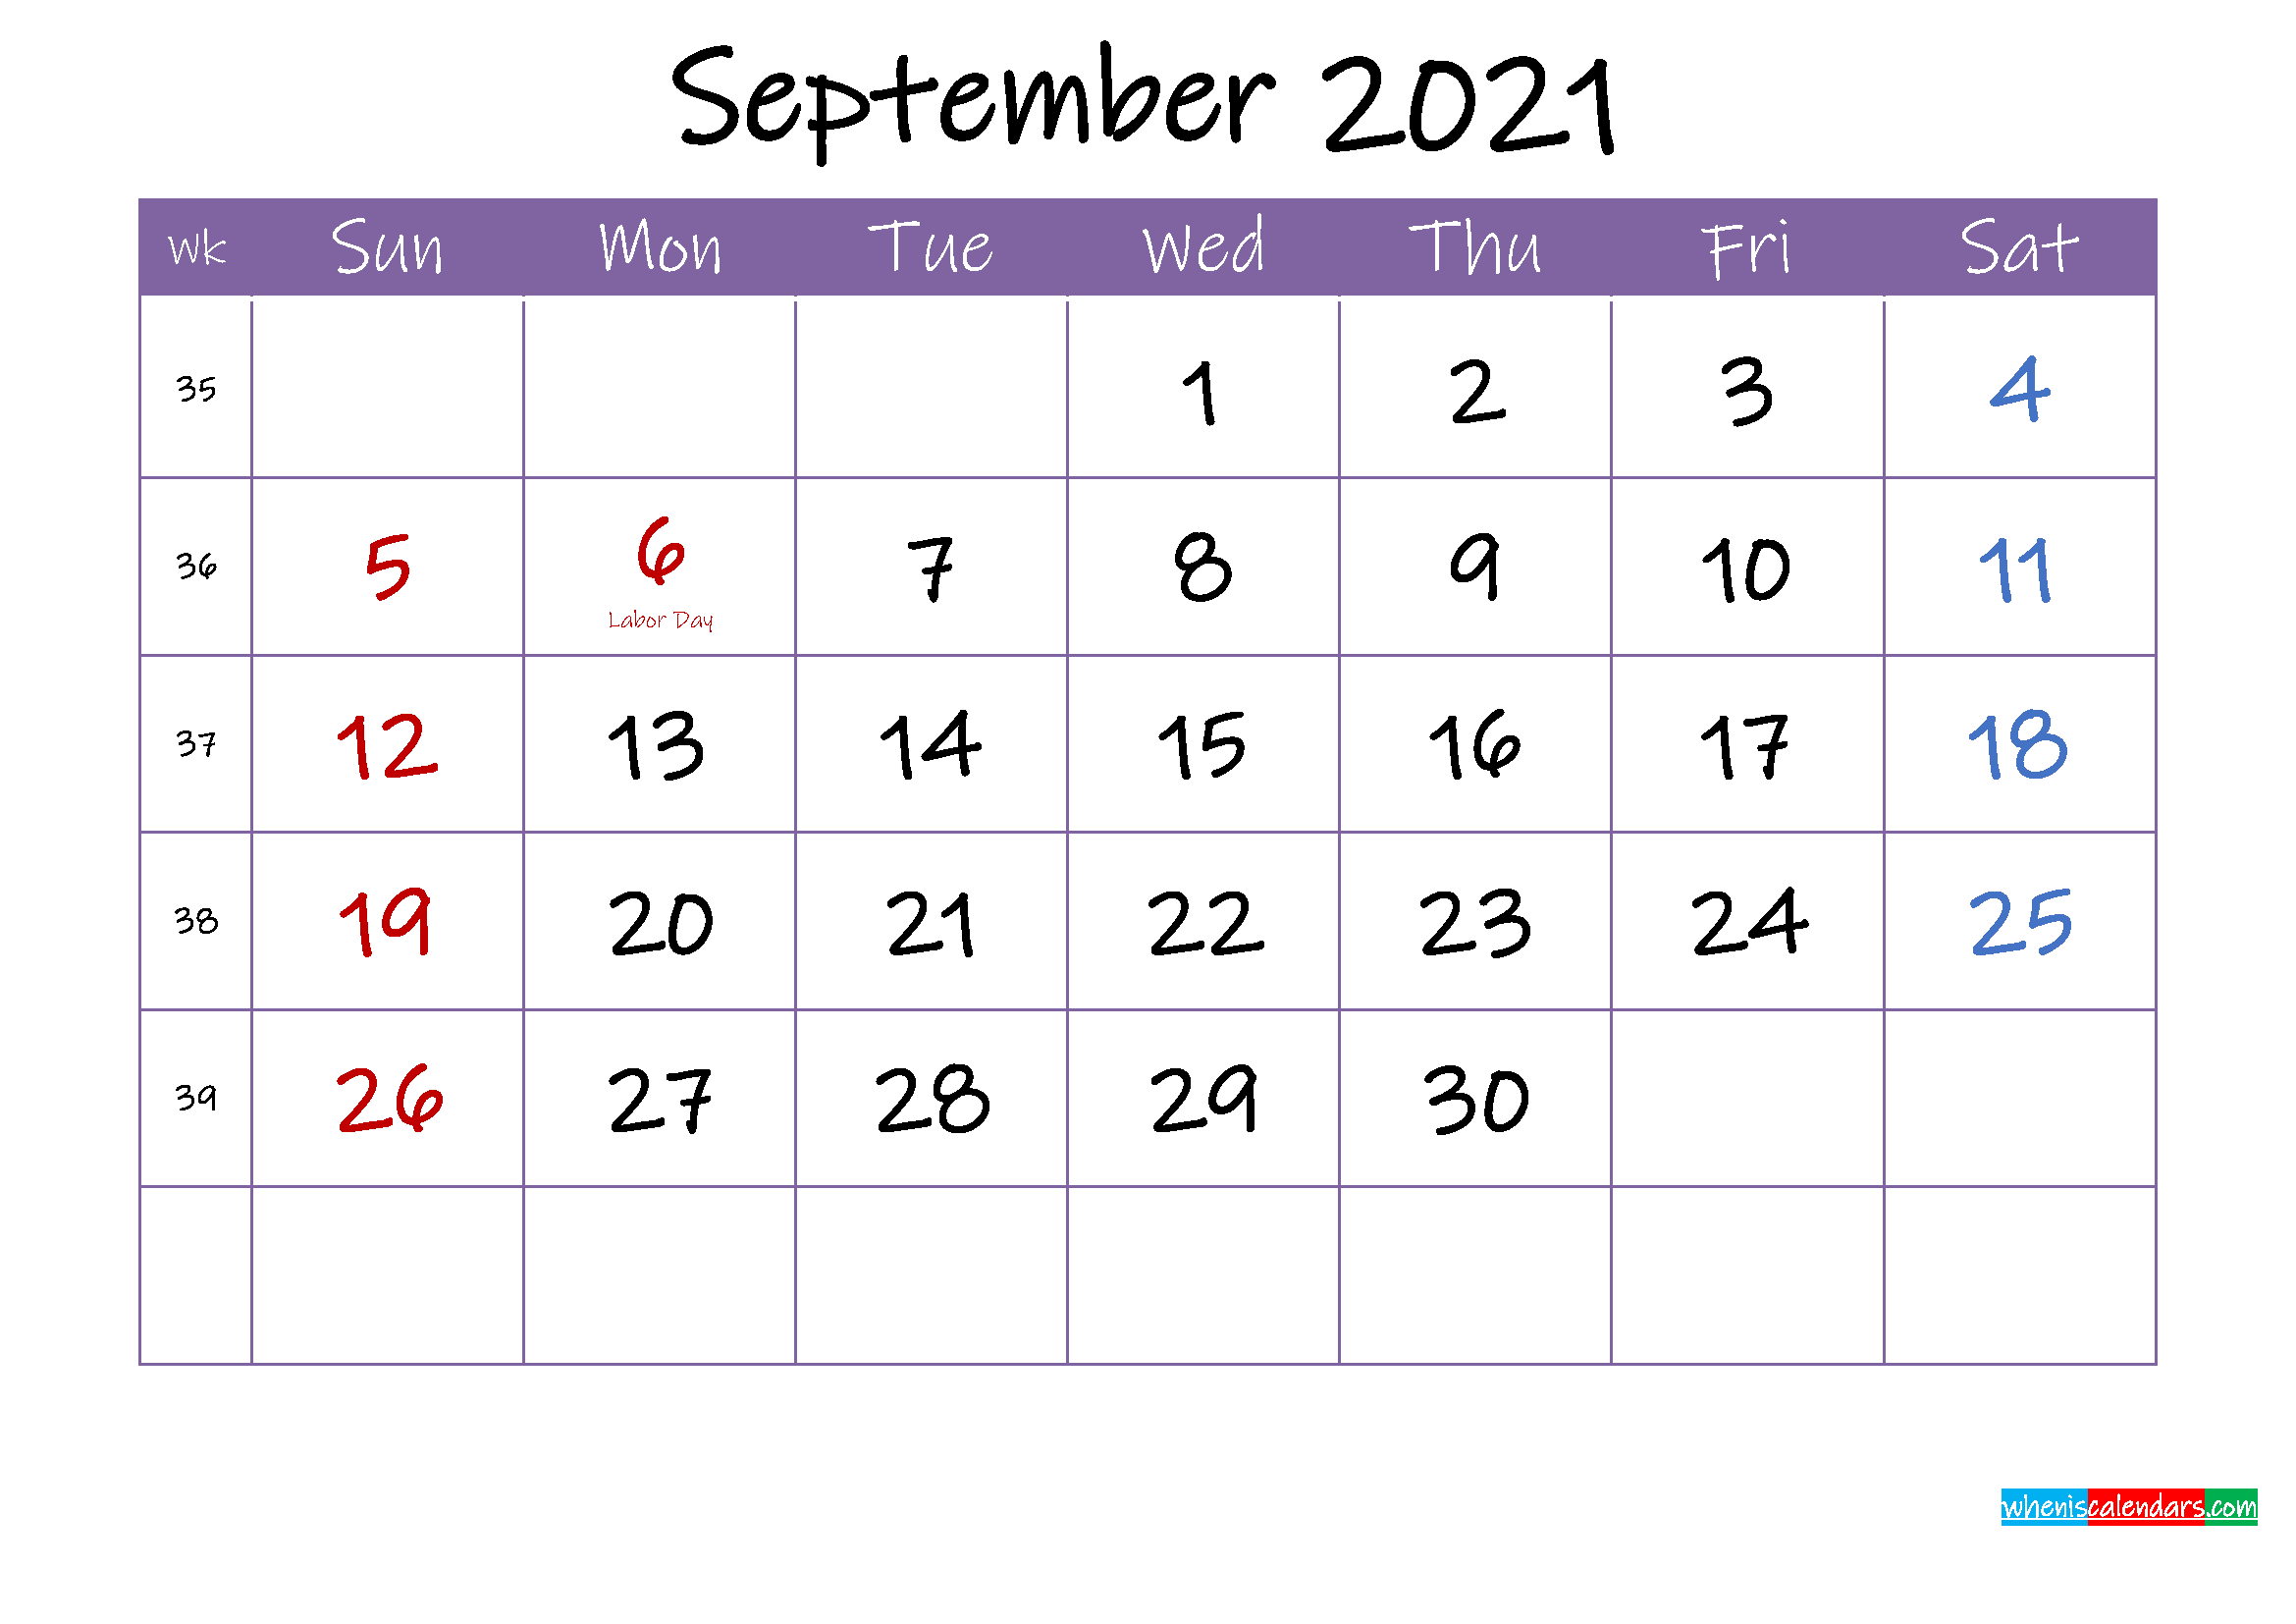 September 2021 Calendar with Holidays Printable